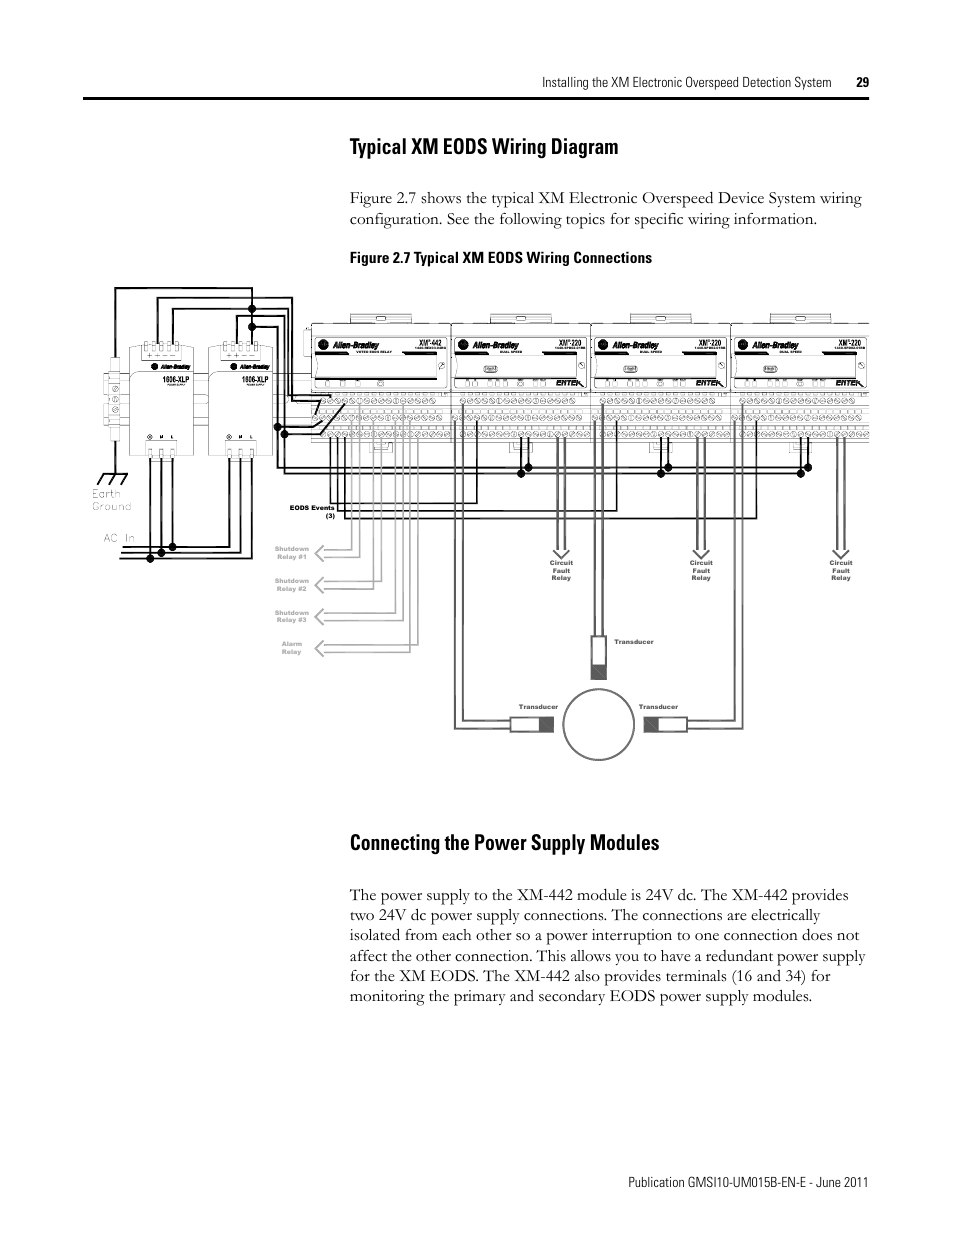 medium resolution of typical xm eods wiring diagram connecting the power supply modules figure 2 7 typical xm eods wiring connections rockwell automation 1606 xlp xm